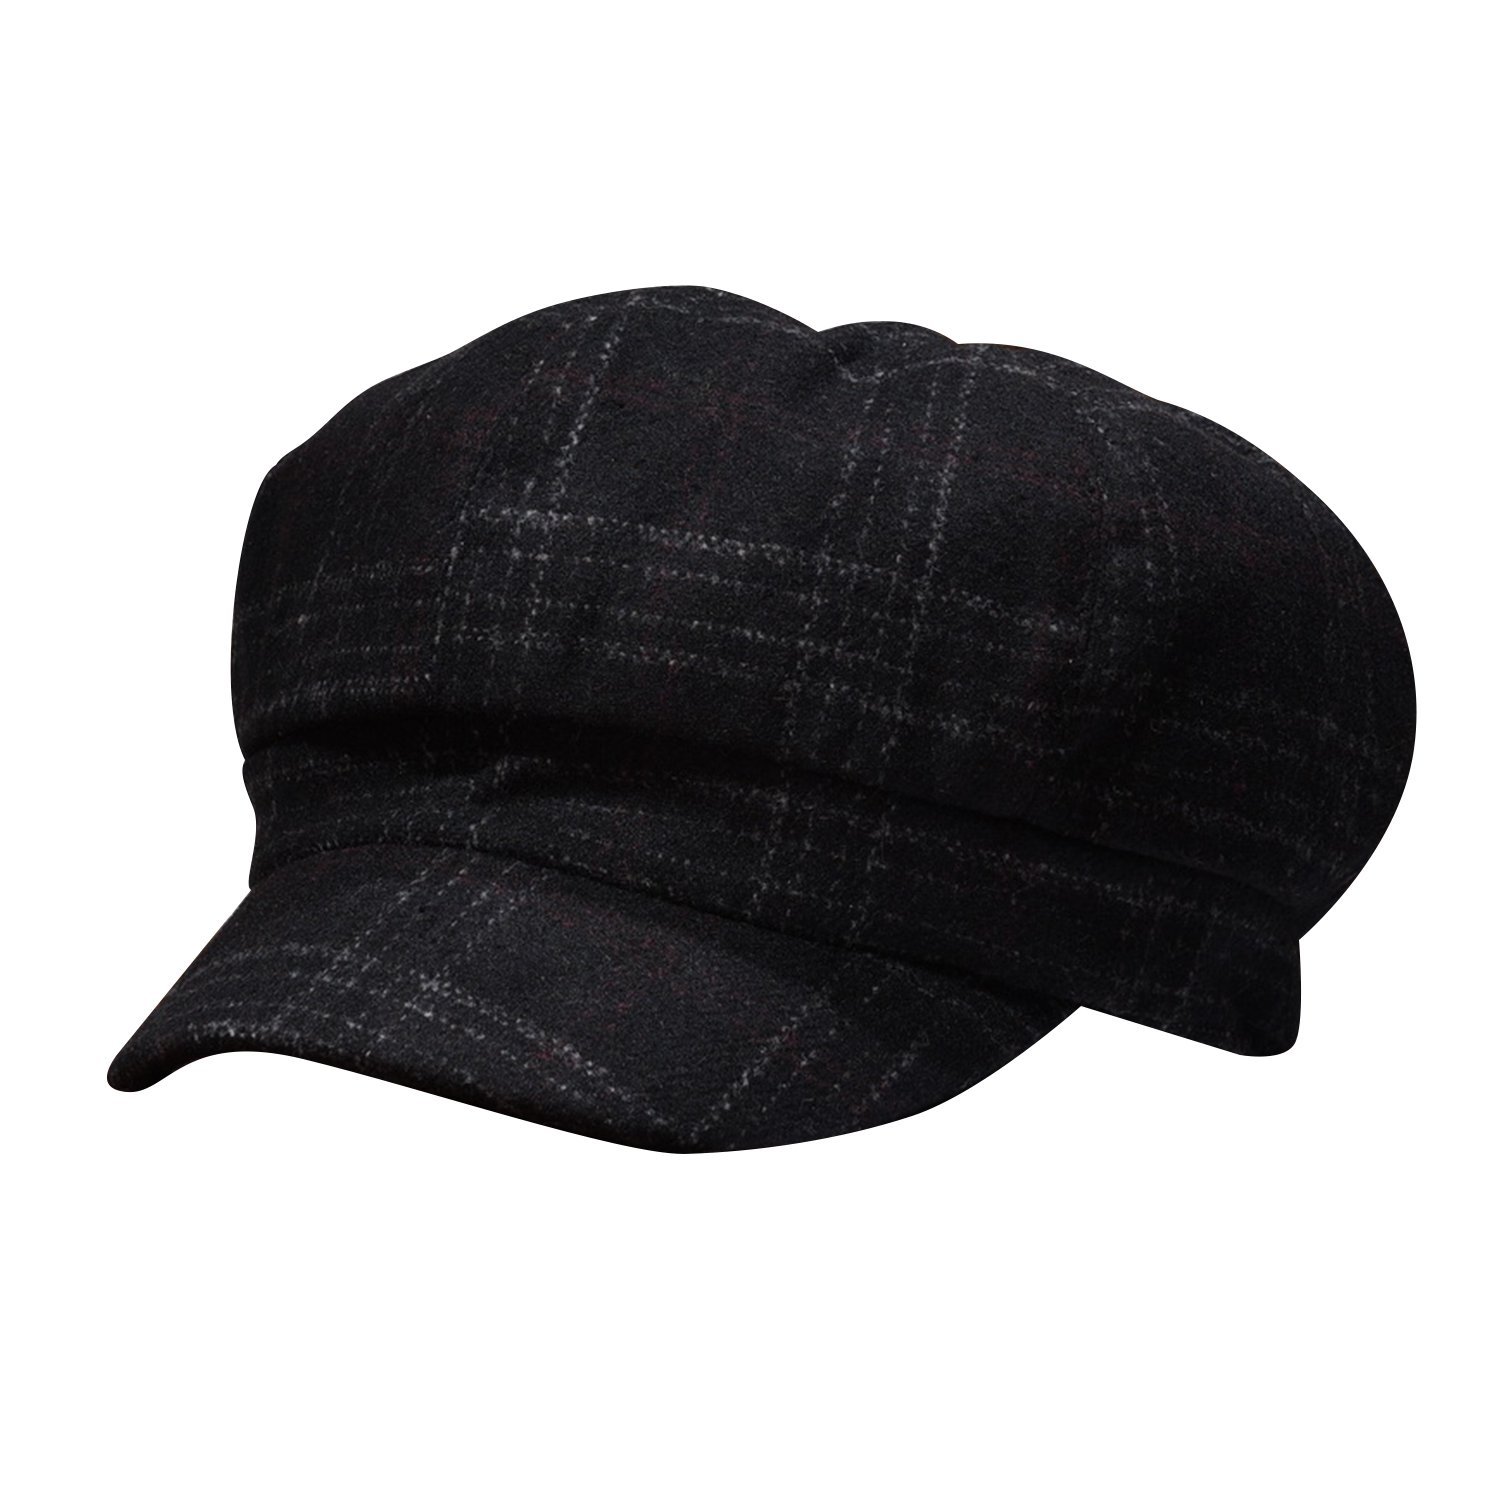 b6532079c Luxspire Women's Retro Plaid Octagonal Cap Winter Beret Newsboy Hat